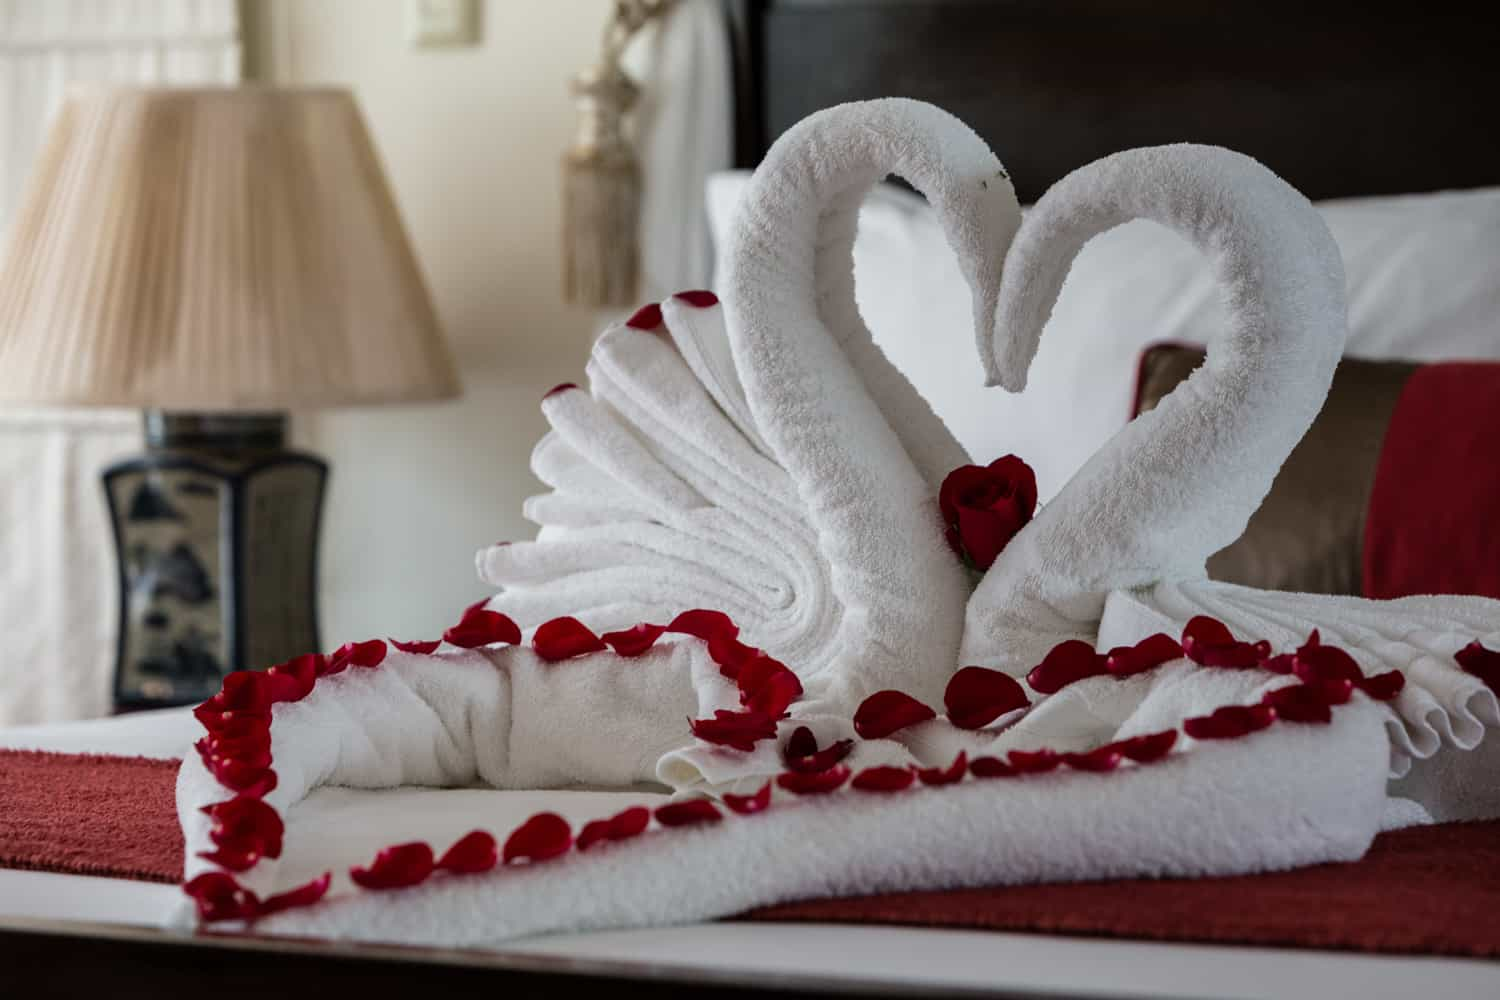 Swan tails in form of heart with rose petals for just married couple.